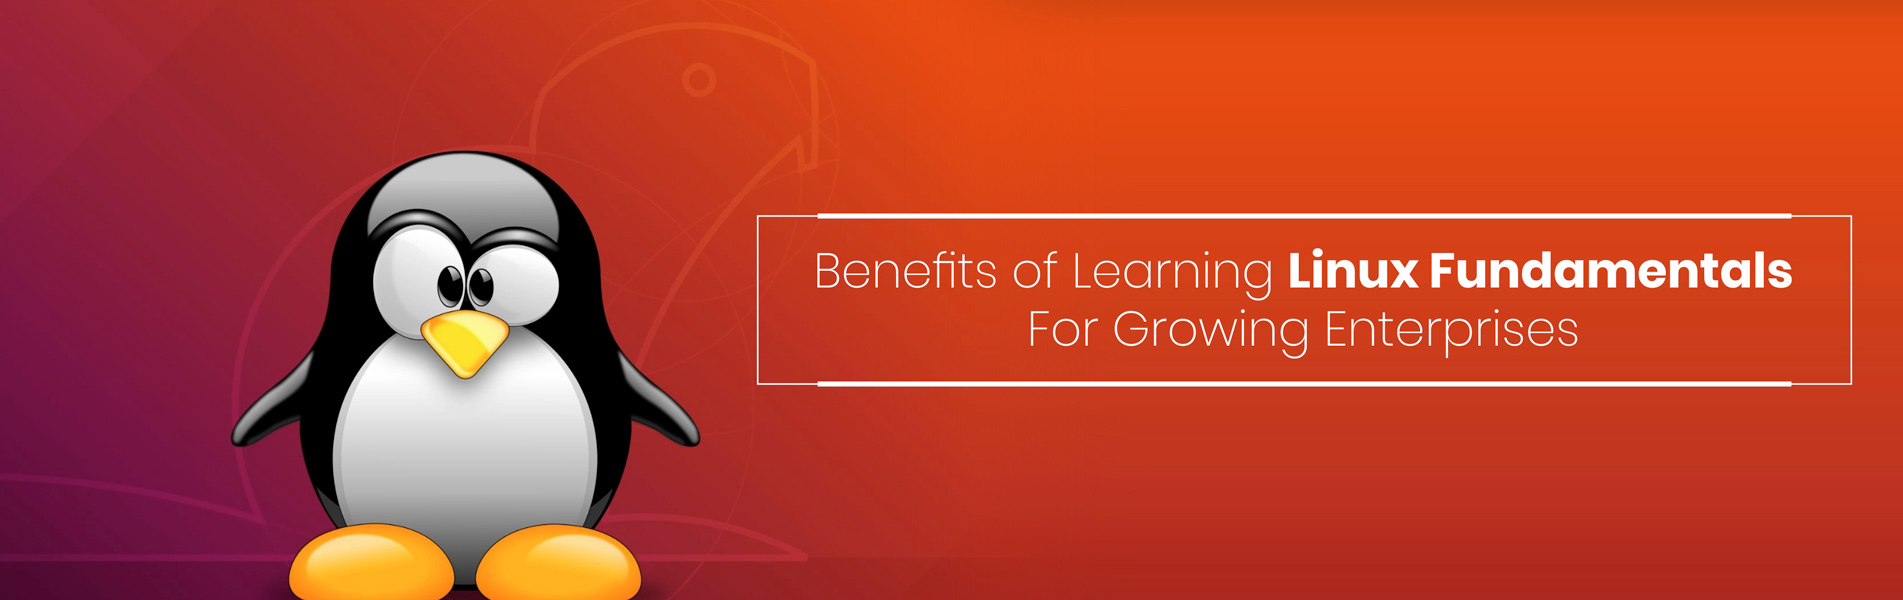 Benefits of learning Linux fundamentals for growing enterprises